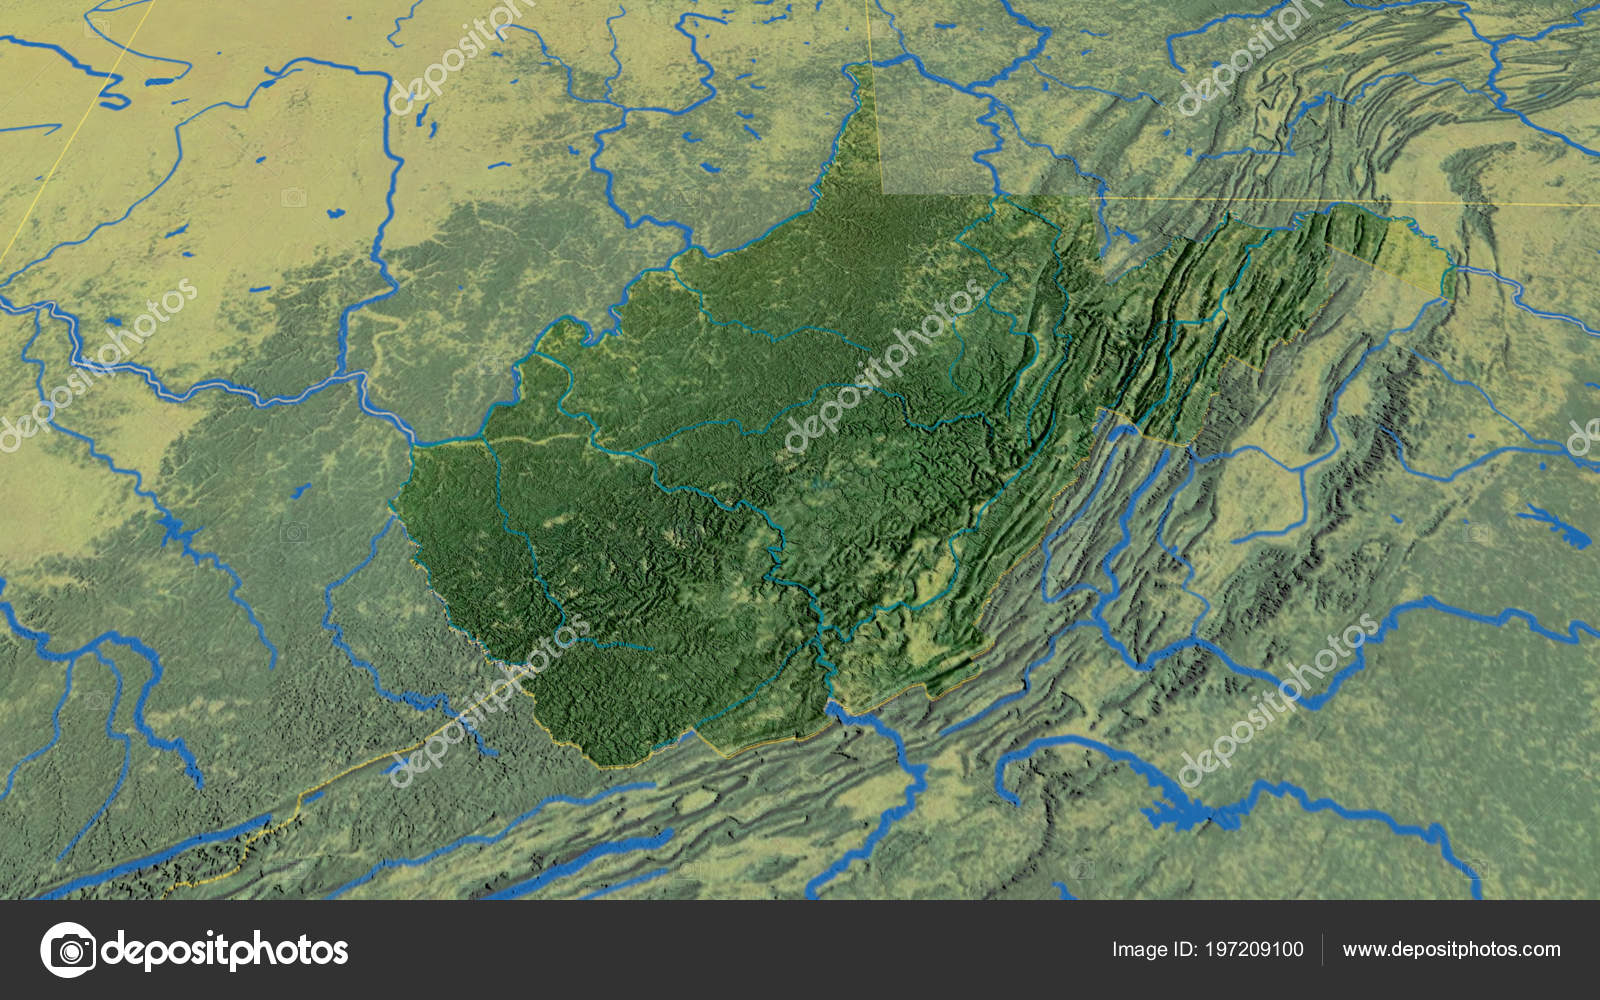 Topographic Map West Virginia.West Virginia Region United States Extruded Topographic Map Stock